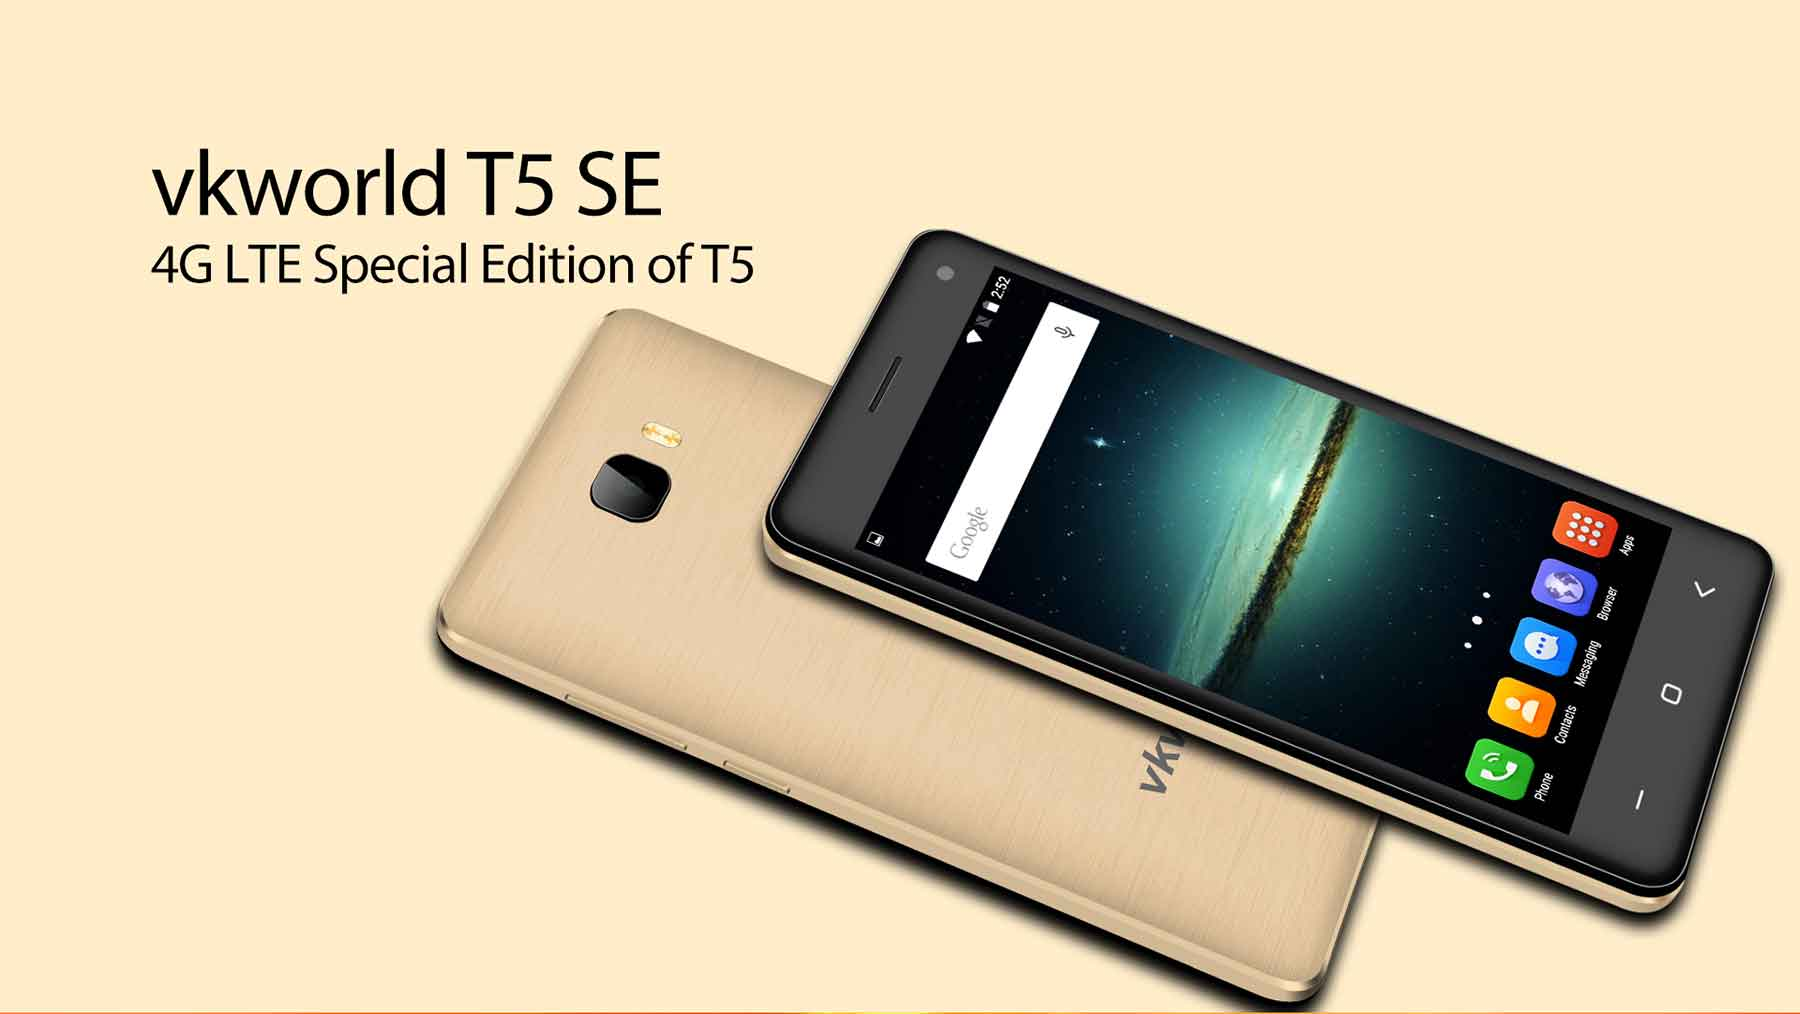 VKworld T5 SE Android 5.1 4G Smartphone 5.0 inch HD Screen MTK6735 Quad Core 1.0GHz 1GB RAM 8GB ROM Cameras Dual WiFi Bluetooth 4.0